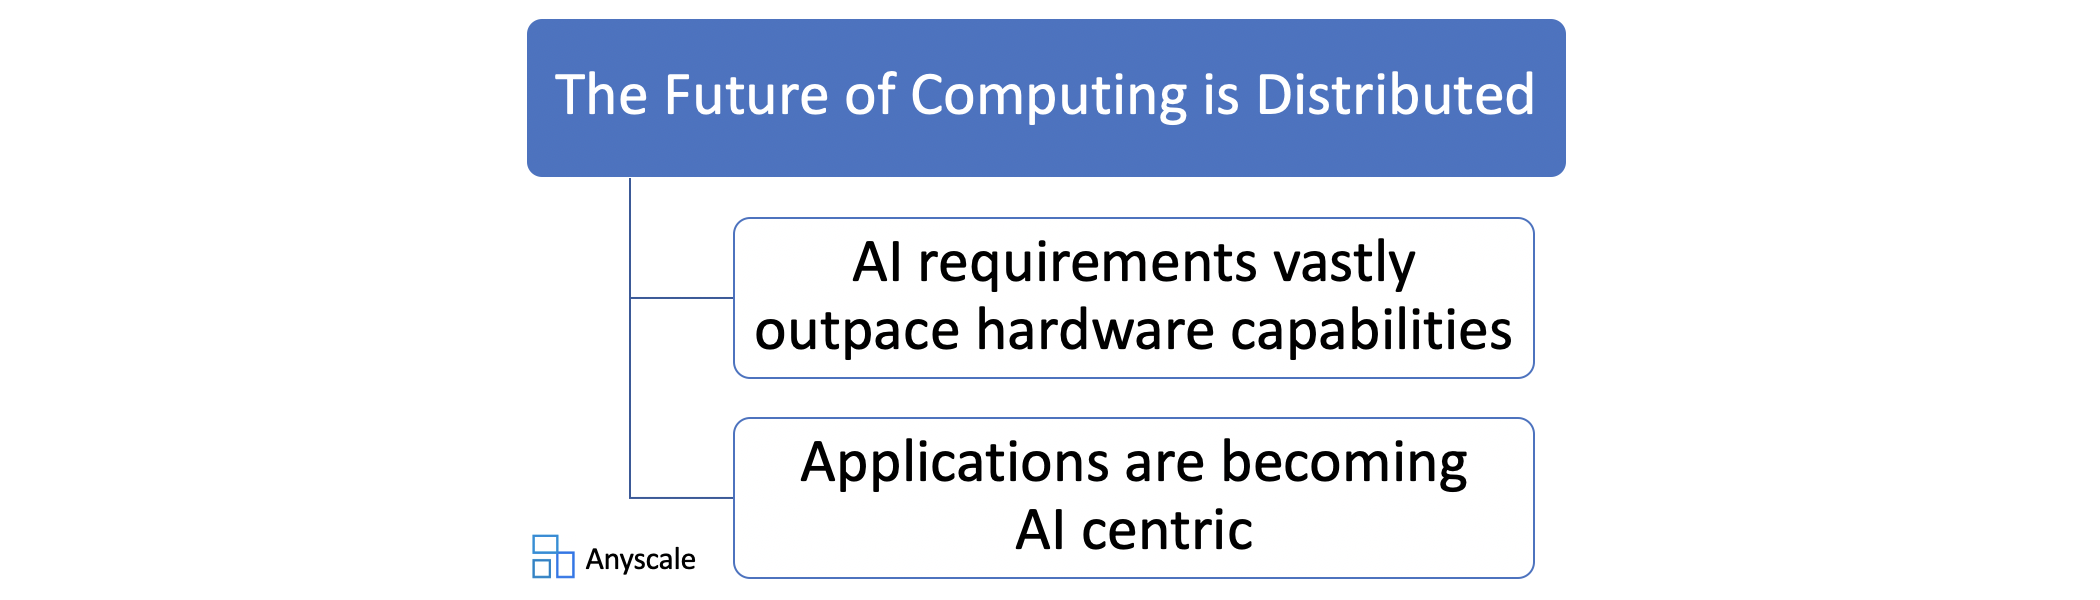 future-is-distributed